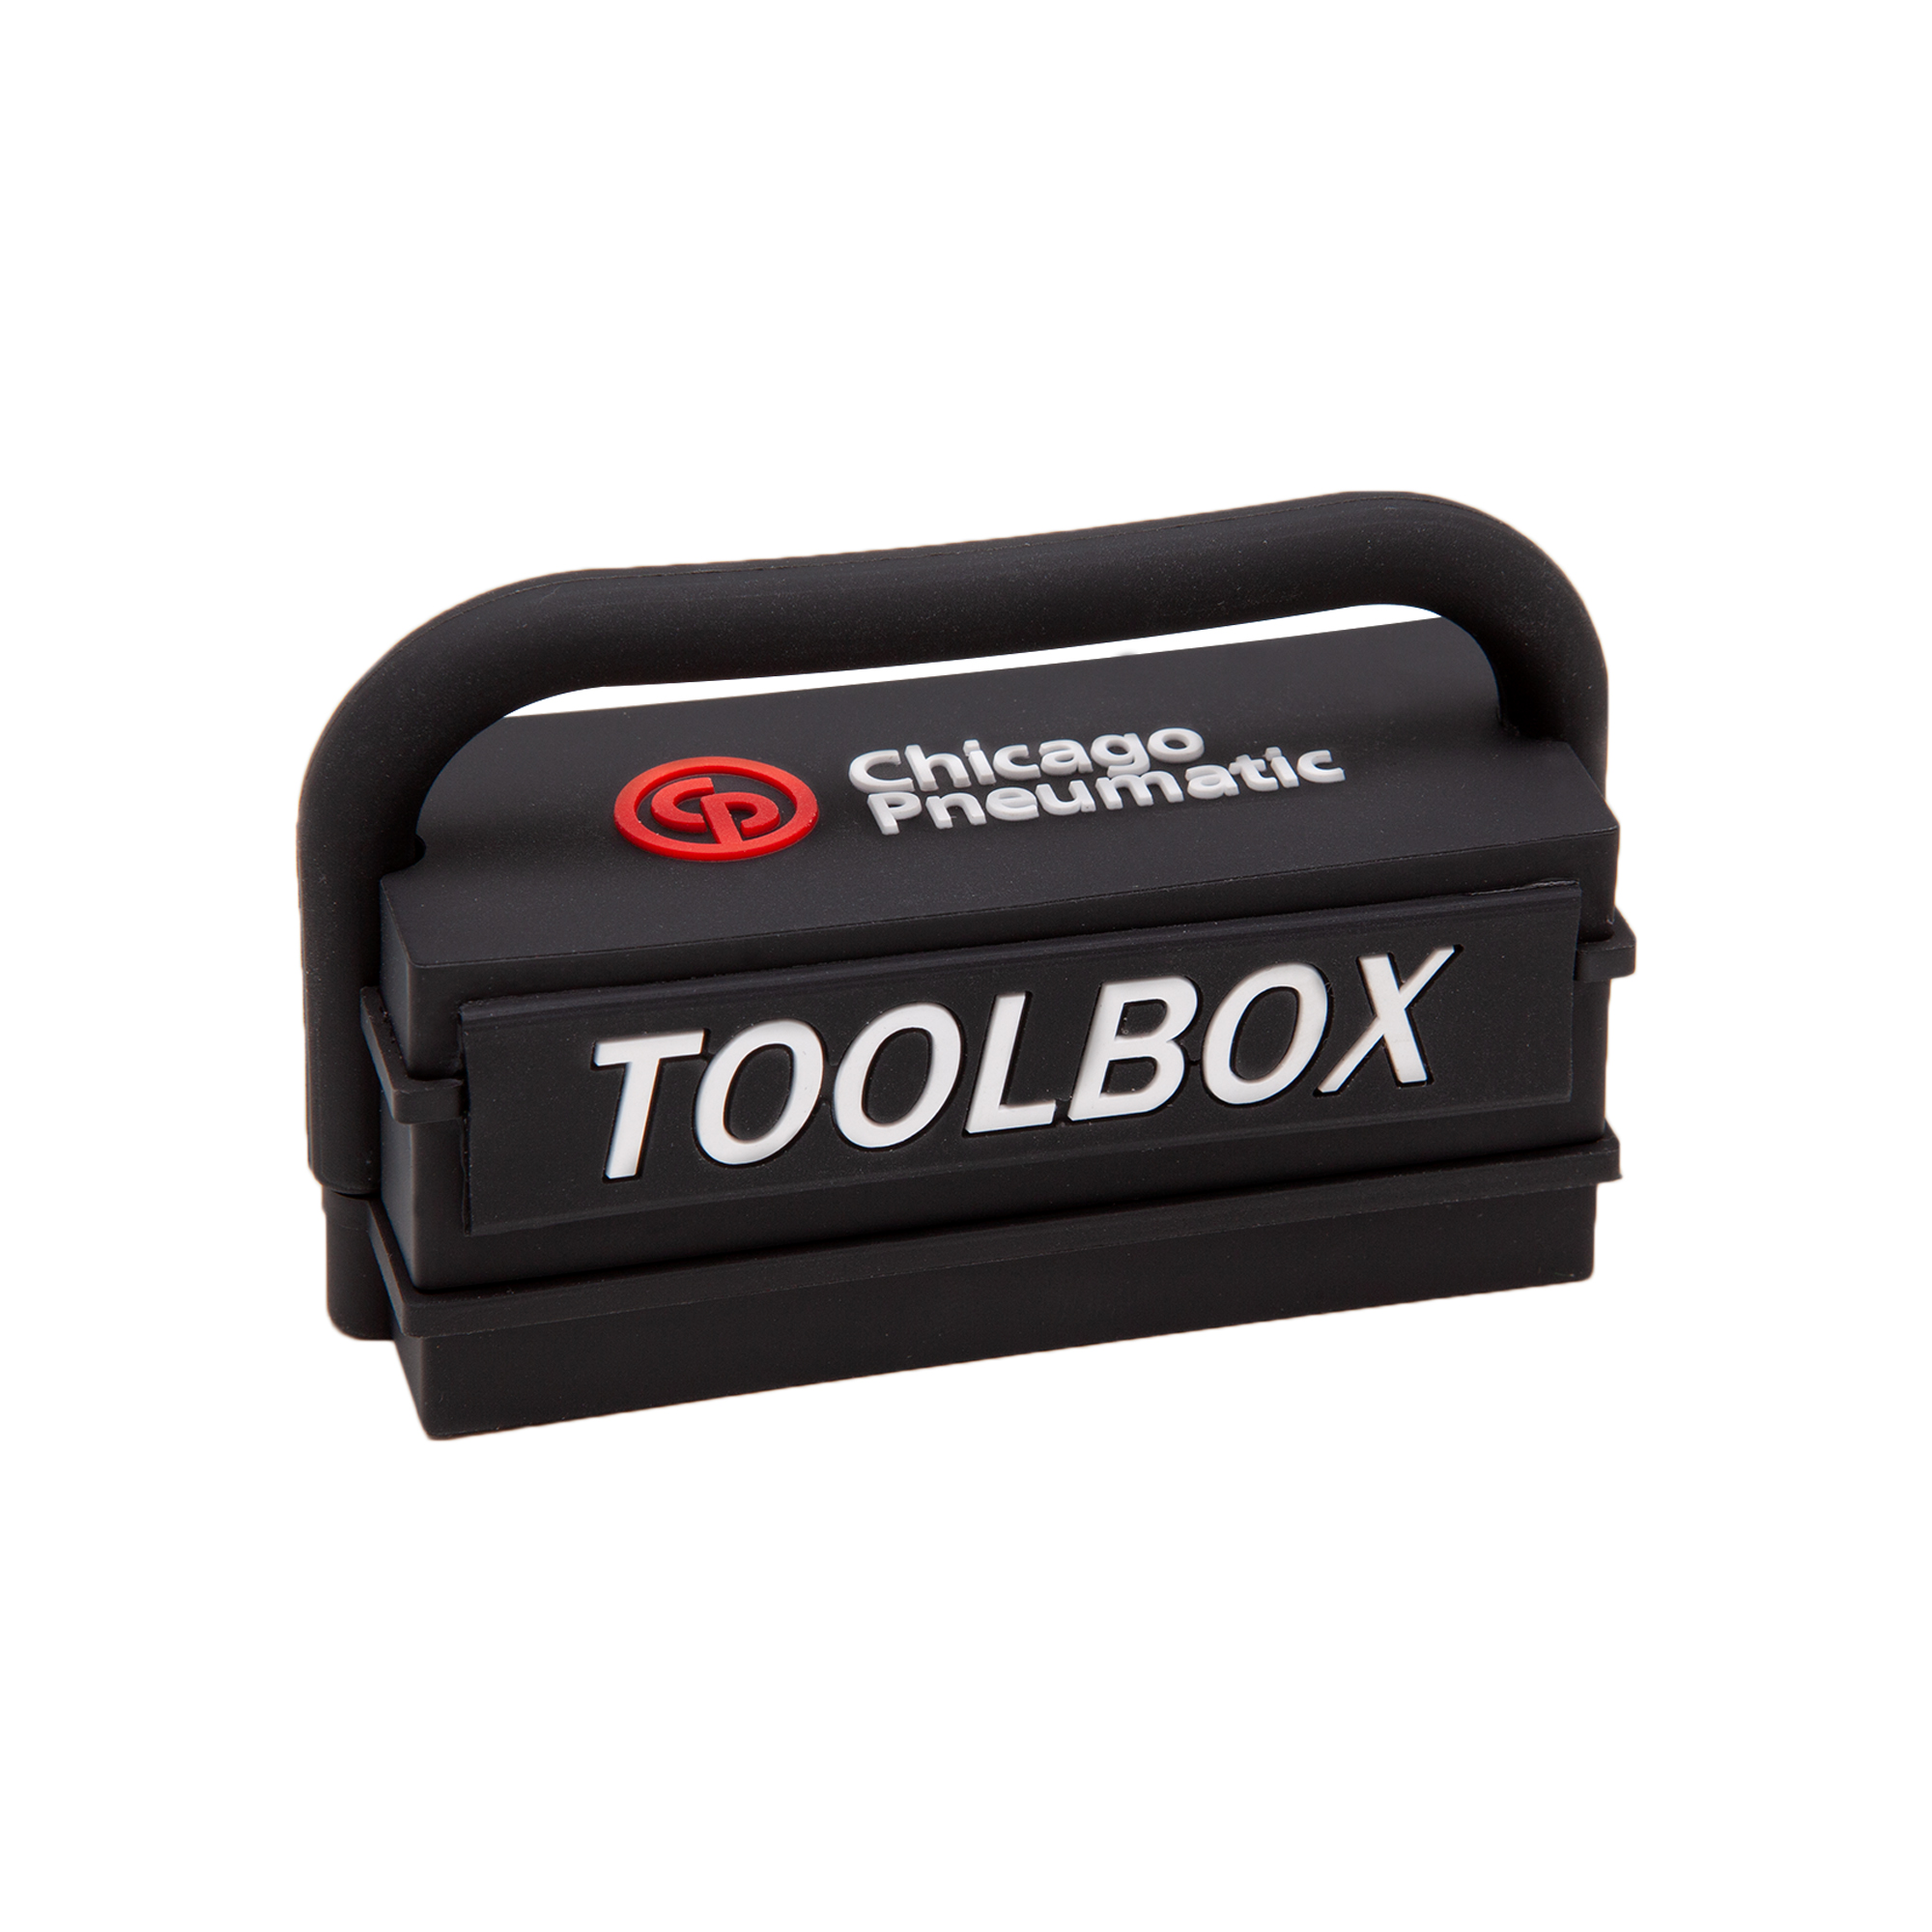 Likeable mini toolbox, contains six bits and a bits holder/extender.